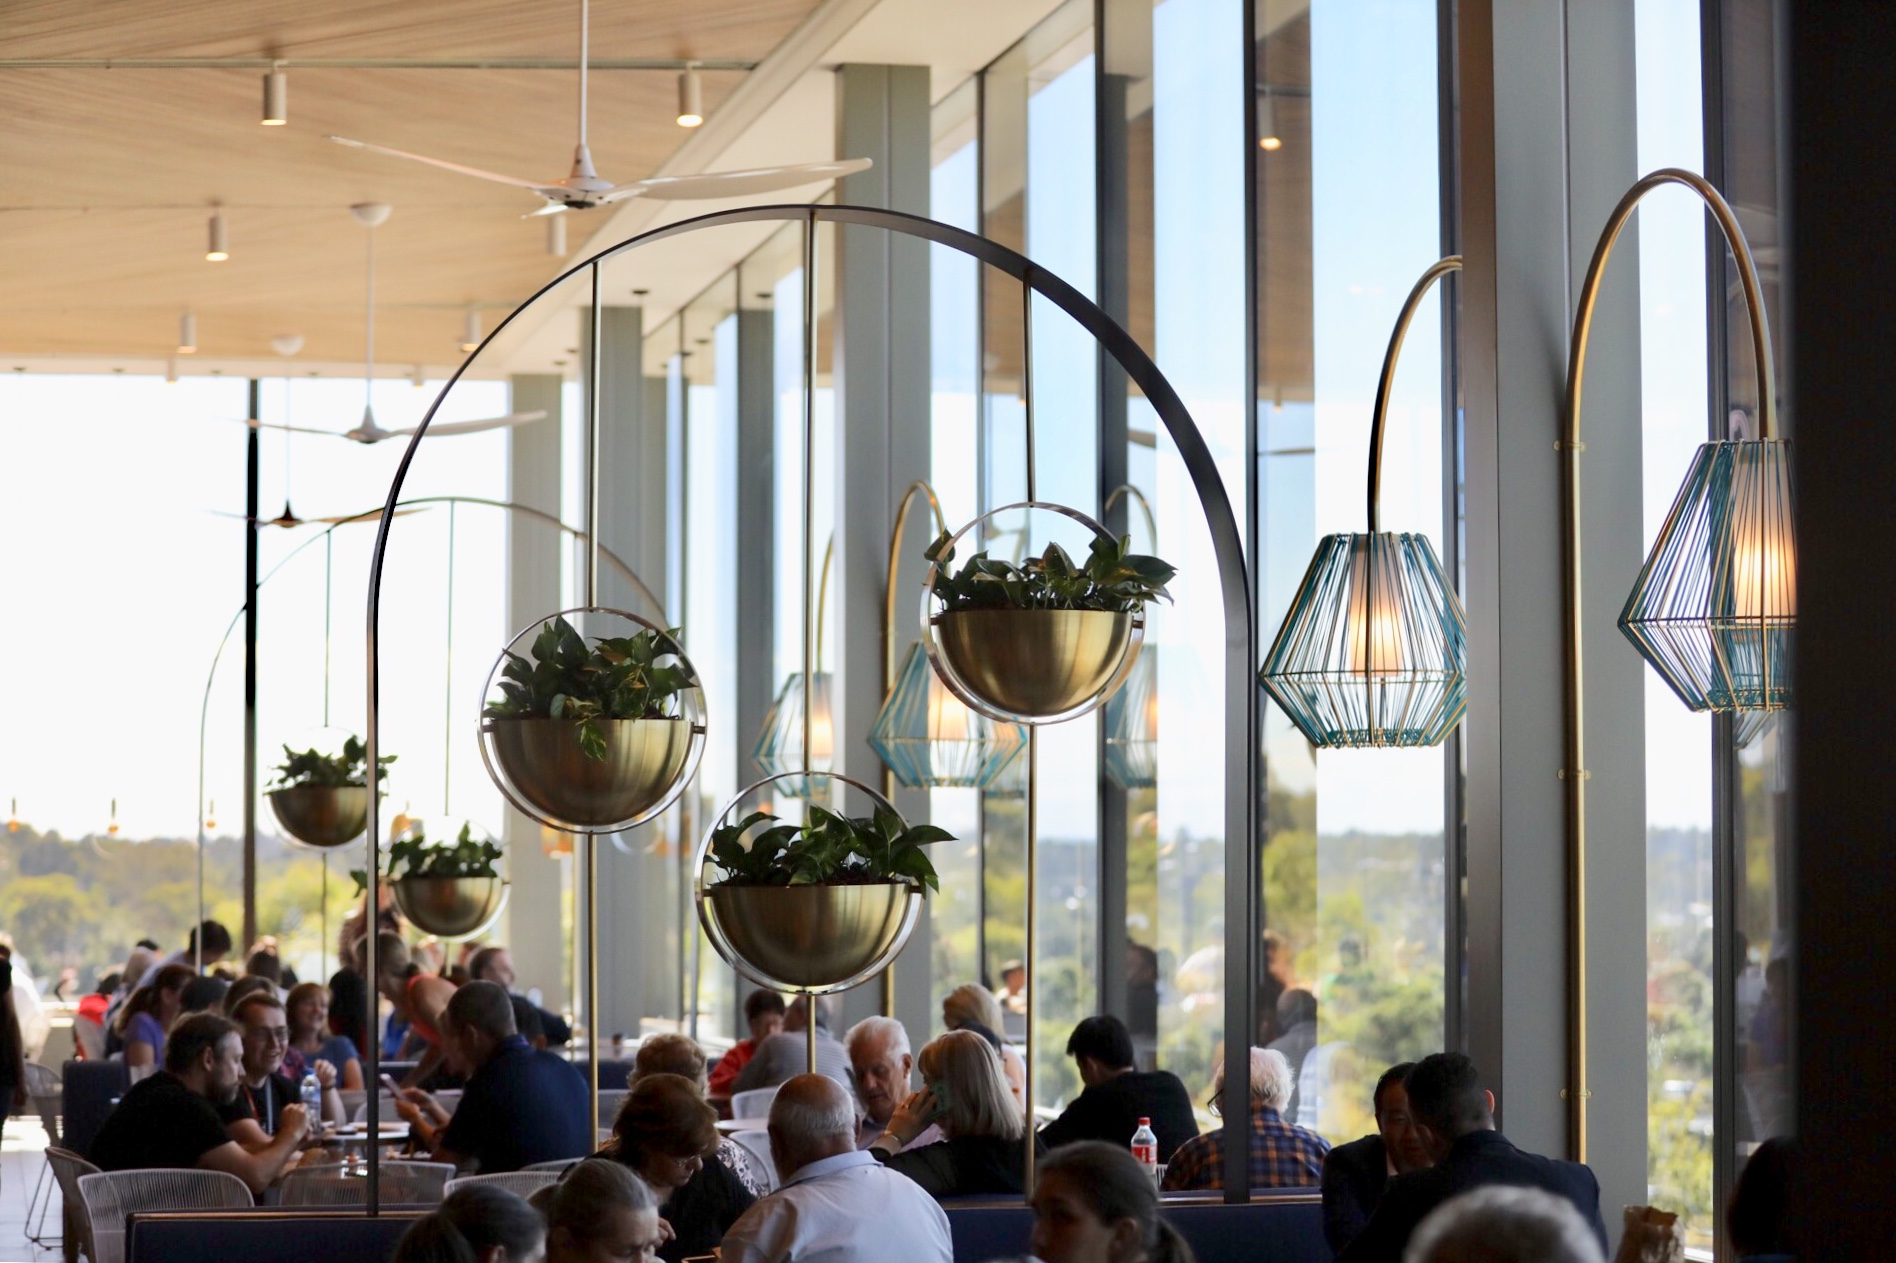 Melbourne's The Glen has unveiled its brand new dining precinct,Gallery featuring modern details throughout  image via centre owners, Vicinity